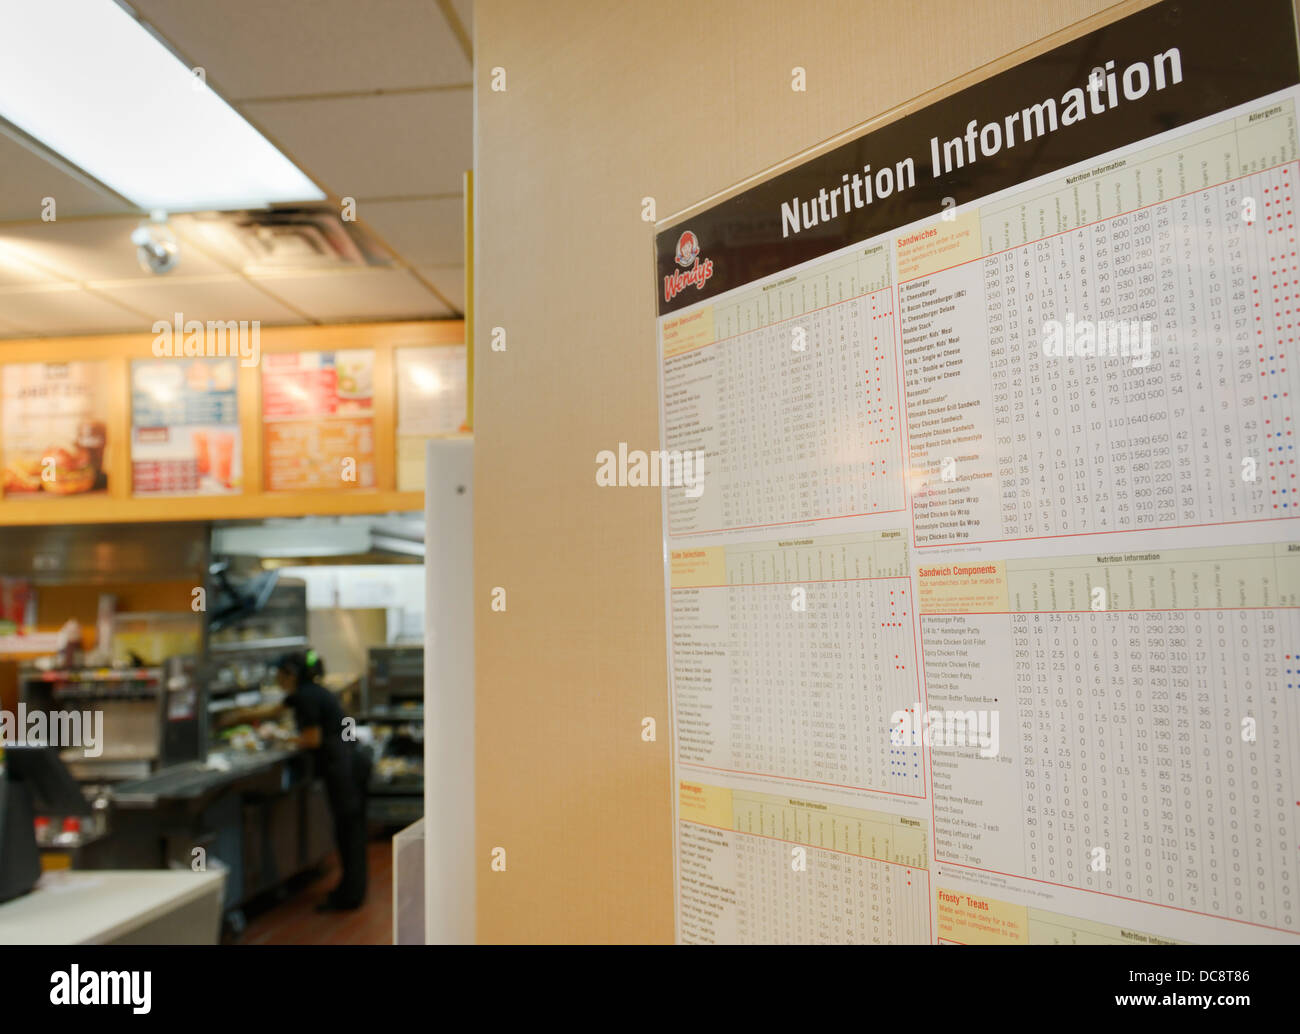 Nutrition information posting at a fast food restaurant, NJ, USA - Stock Image